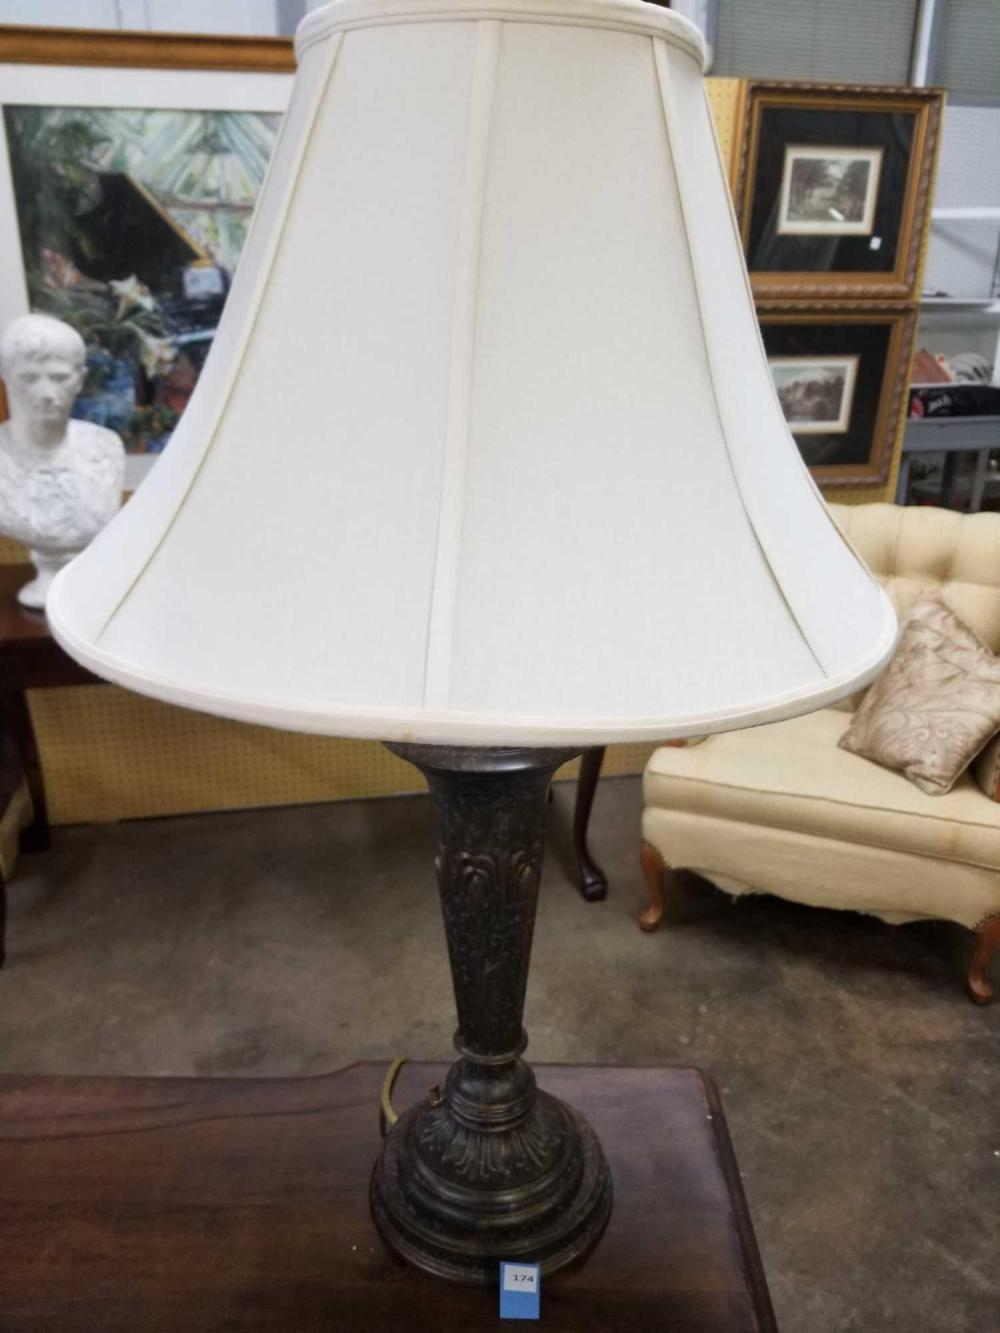 DECORATOR BRONZE TABLE LAMP W/ PANELED SHADE